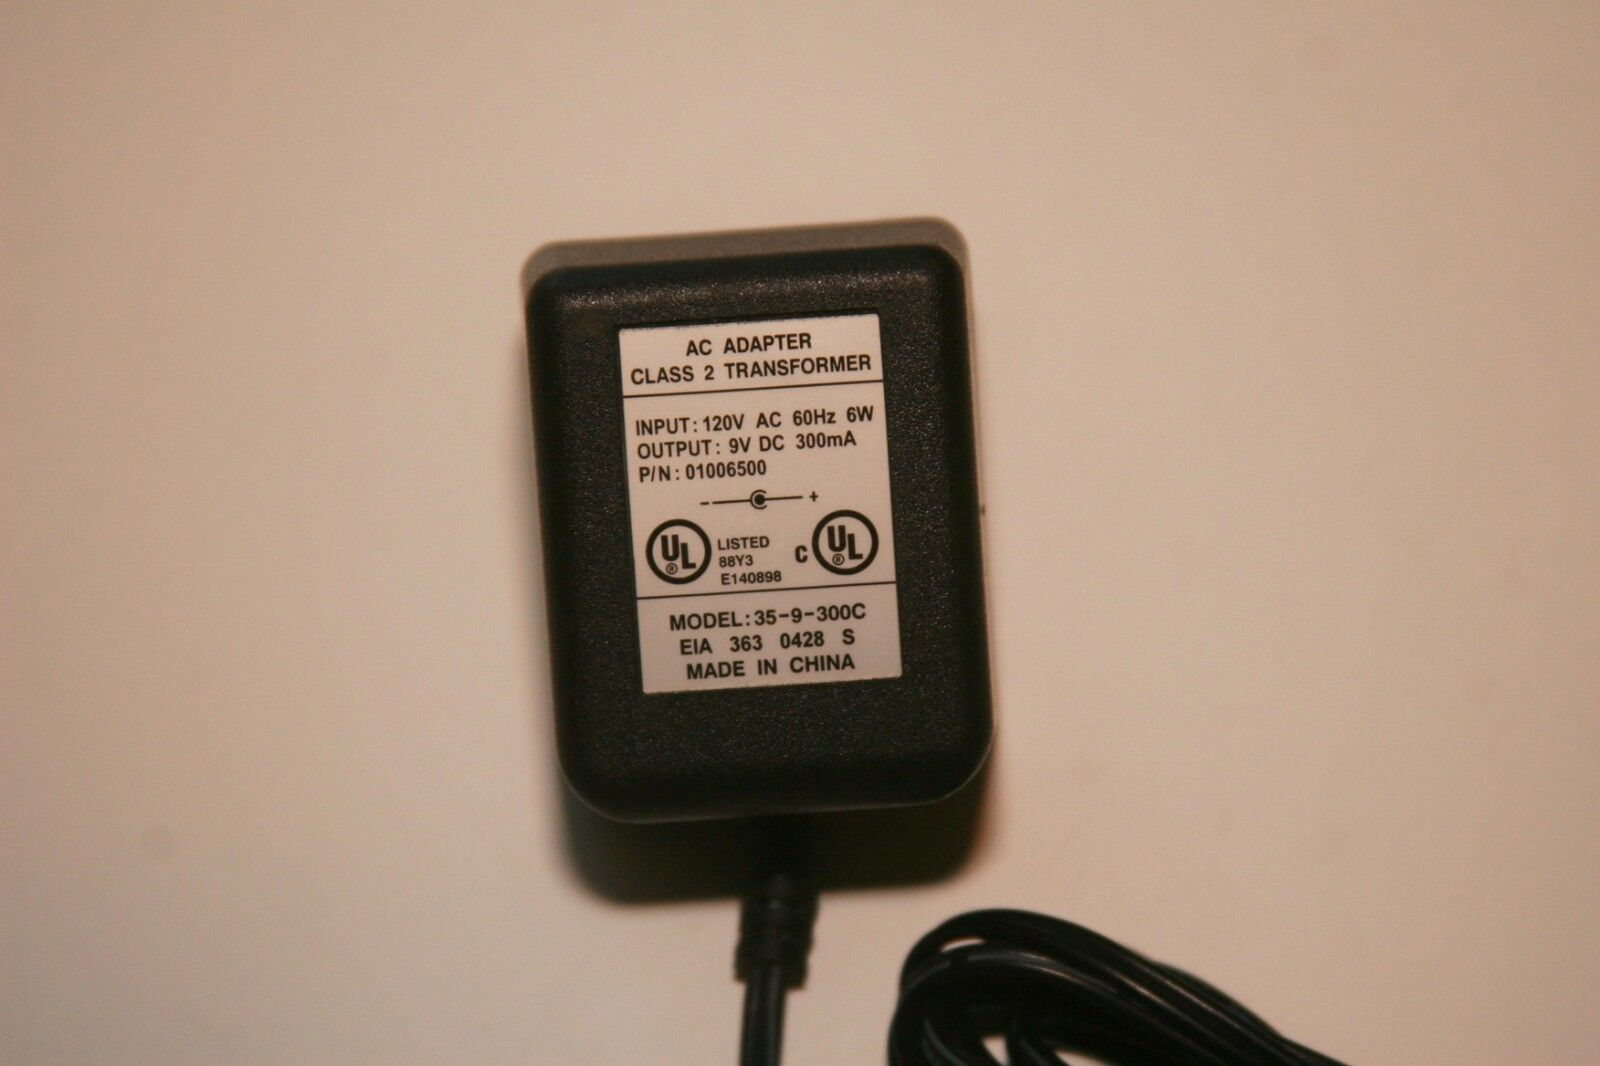 35-9-300C Power Supply Adapter Charger 01006500 Class 2 Transformer 9V DC 300mA